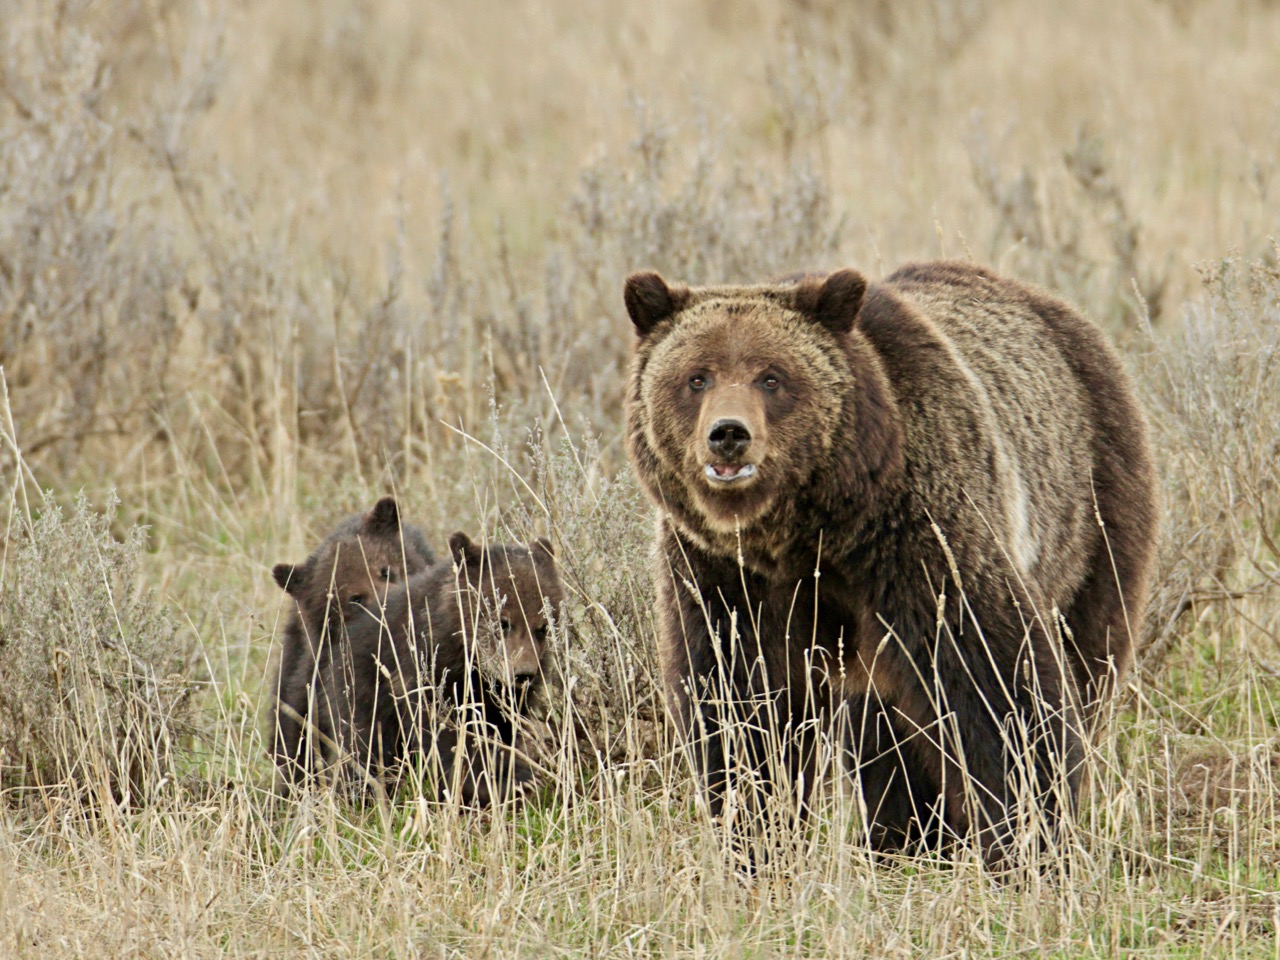 Clara Caufield: Reflections about grizzly and black bears